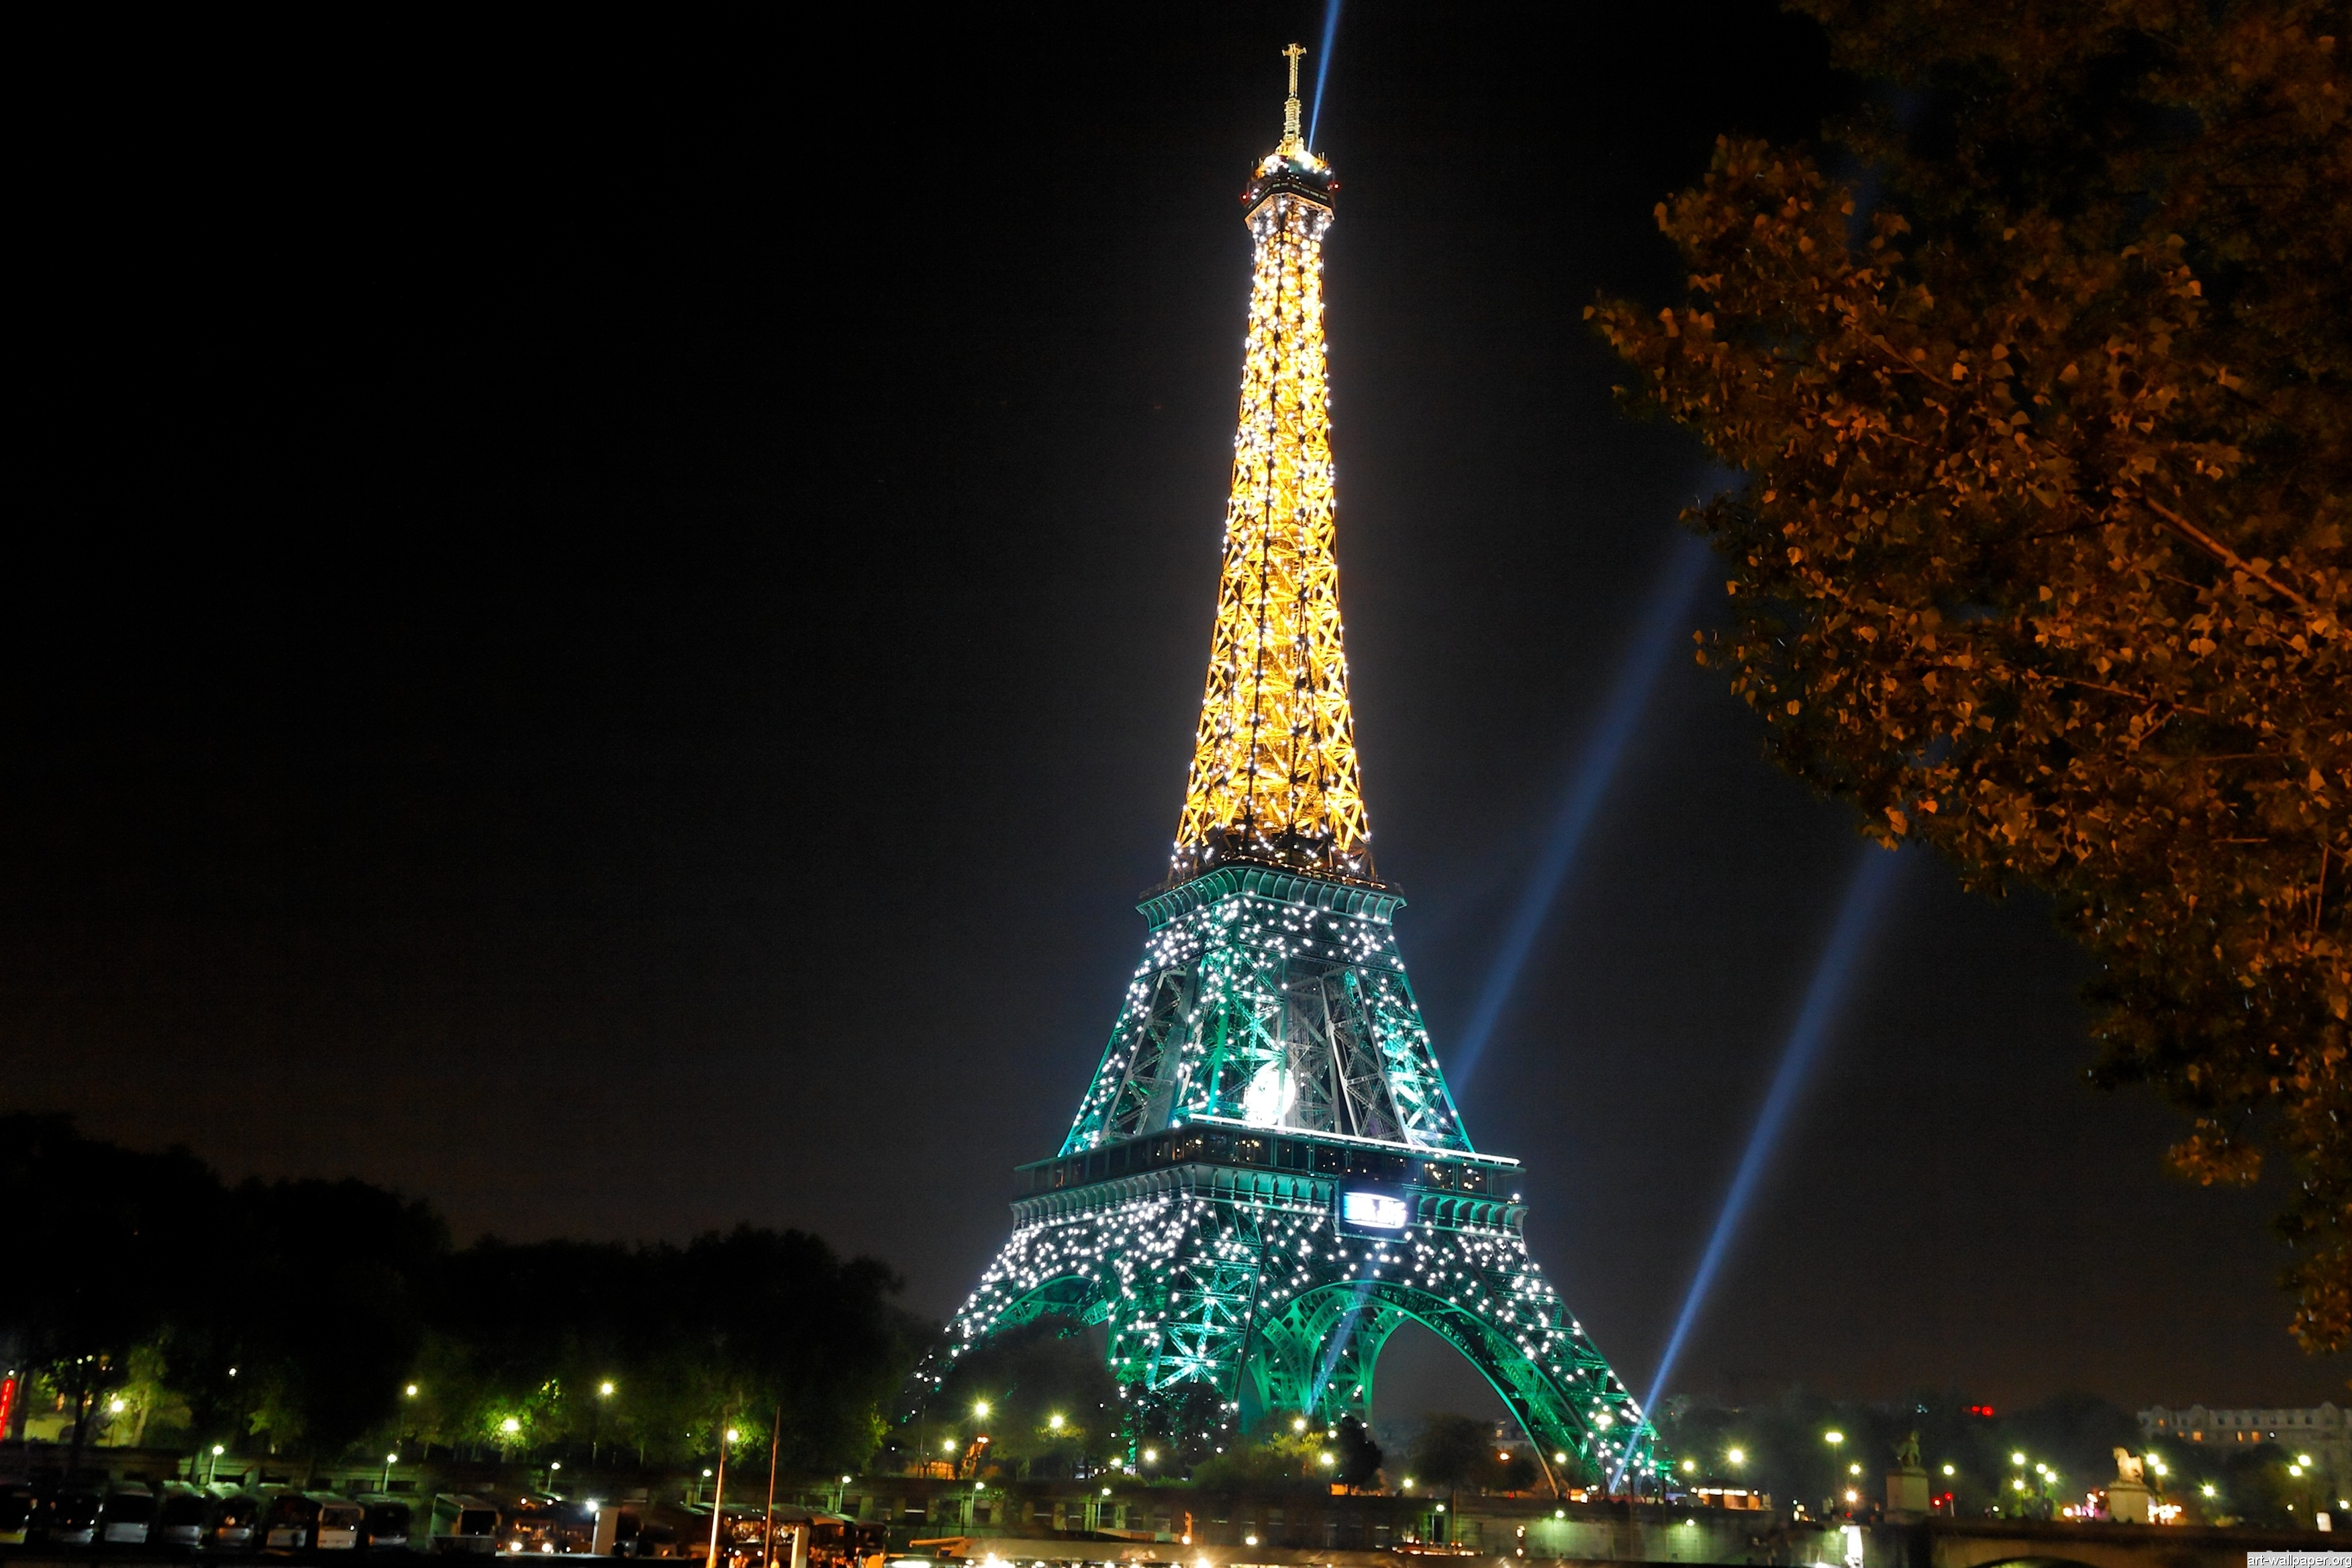 30 Eiffel Tower At Night Images